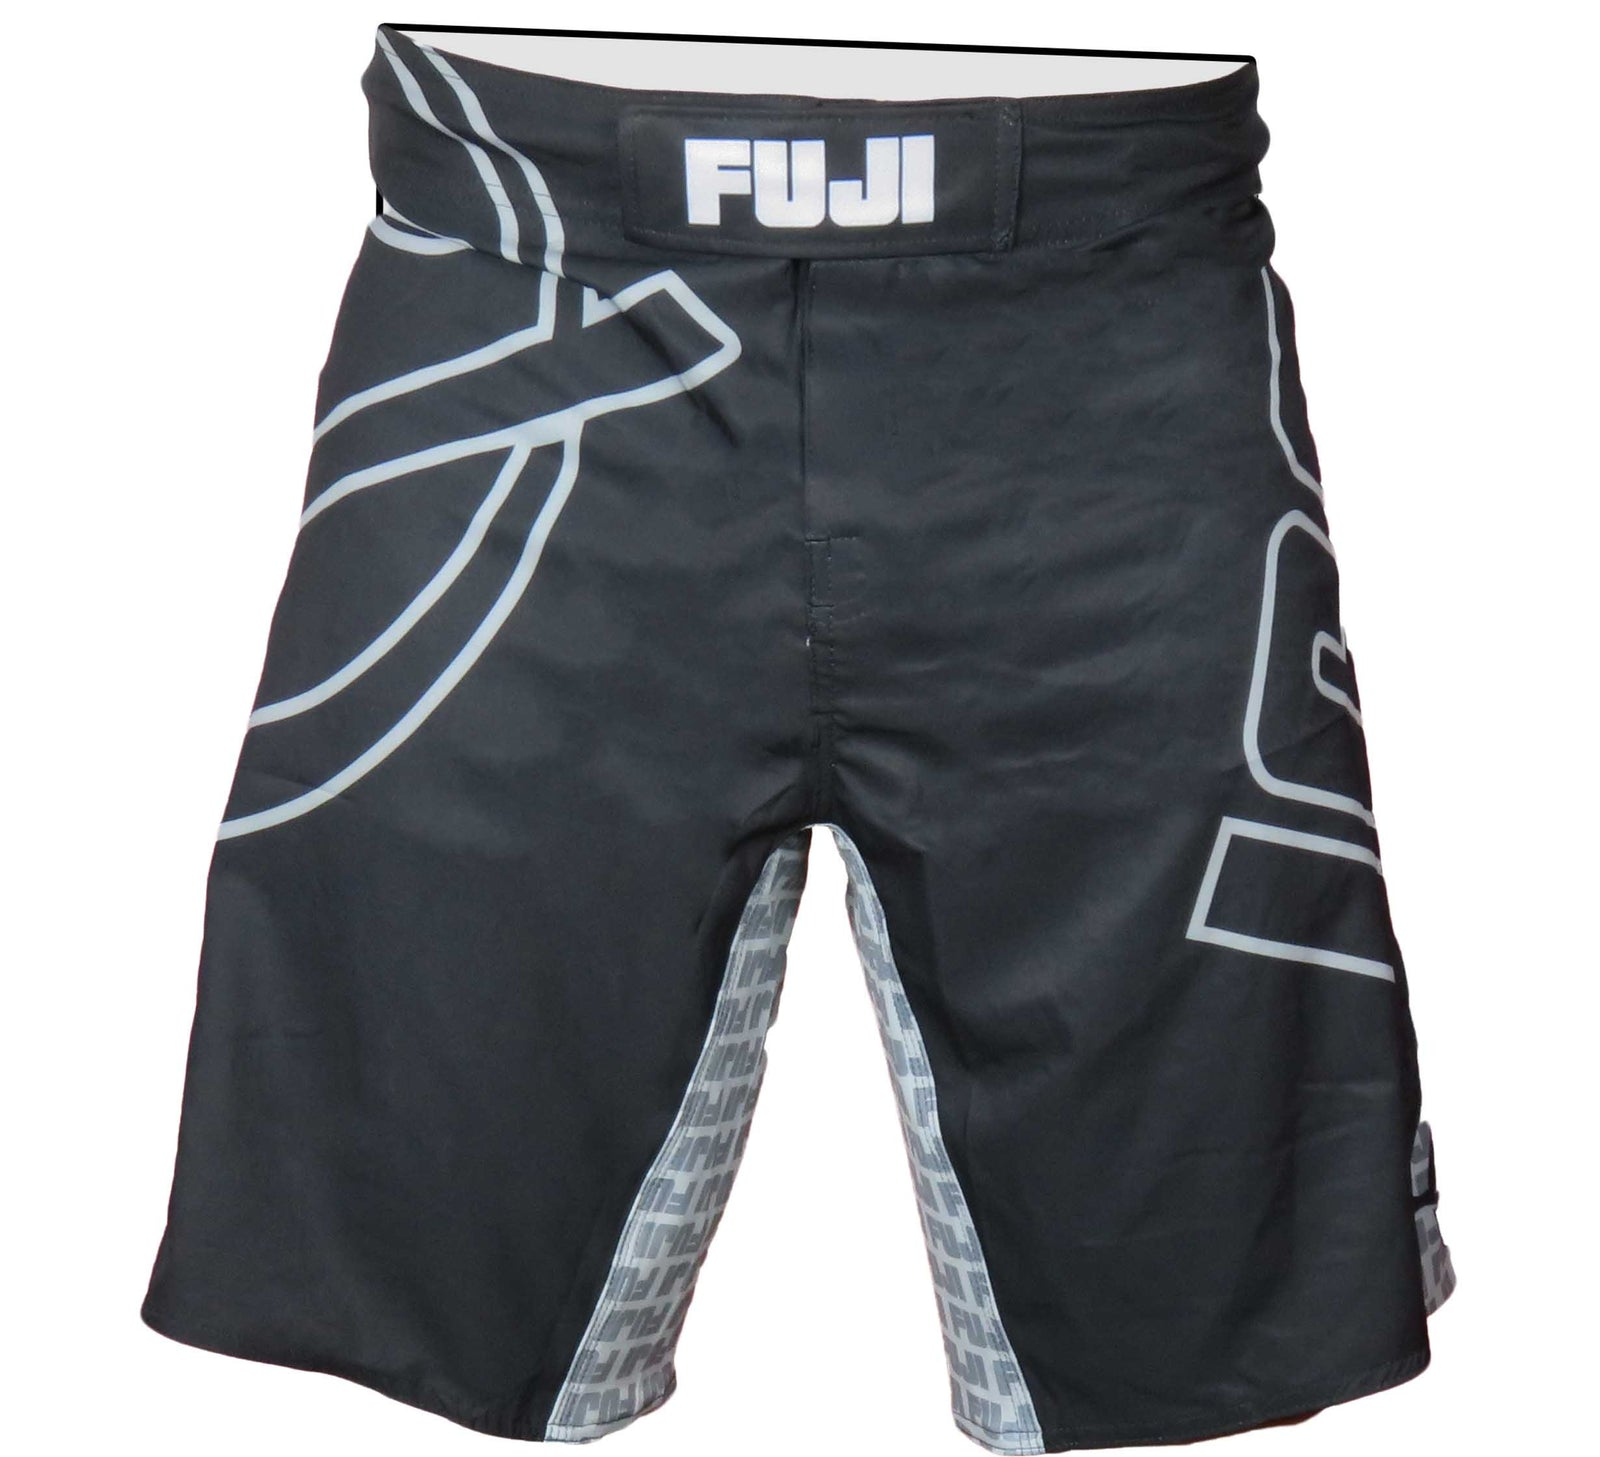 995a9c4c8c1 Inverted Fight Shorts – FUJI Sports